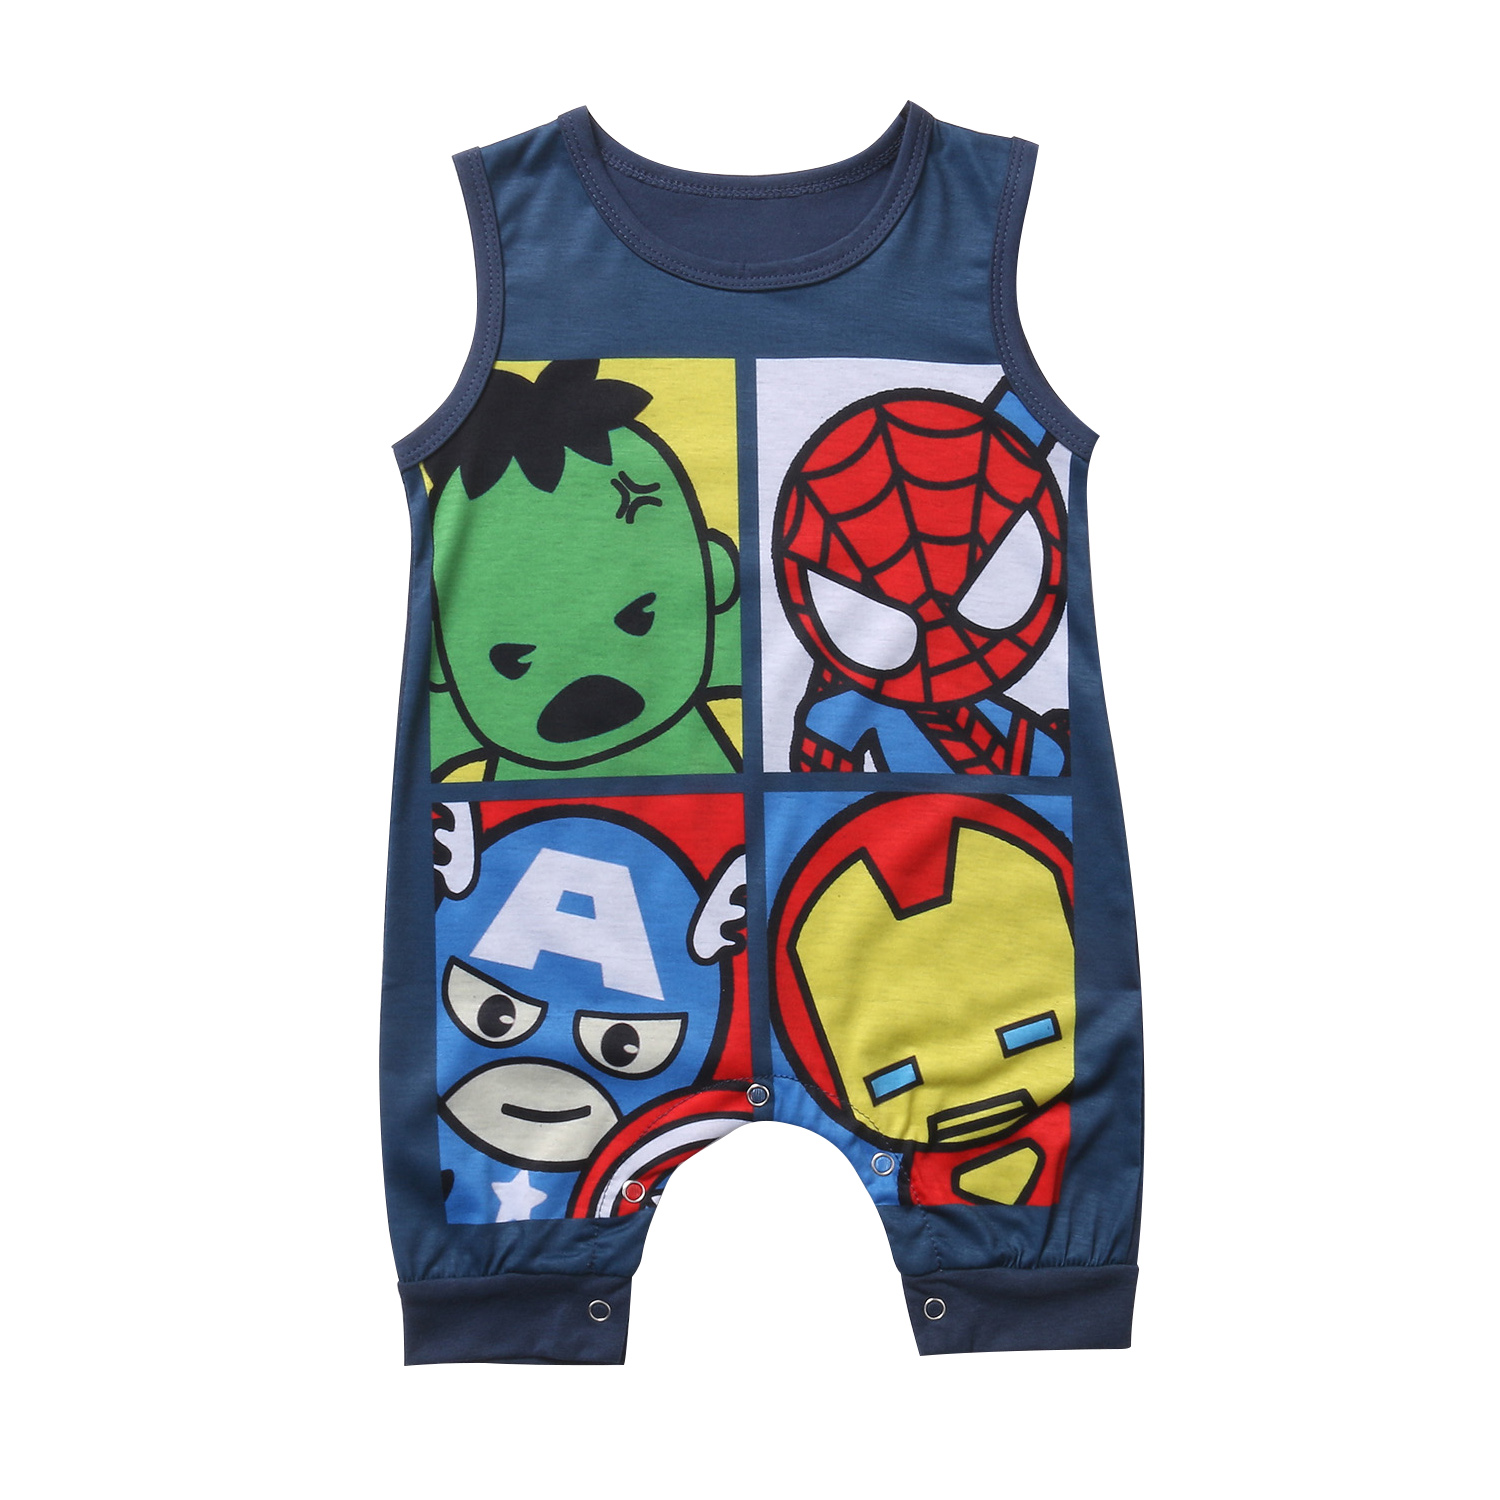 New Style Newborn Toddler Baby Boys Girls Clothes Cotton Sleeveless Romper Jumpsuit Outfits Cartoon Hero Baby Clothing